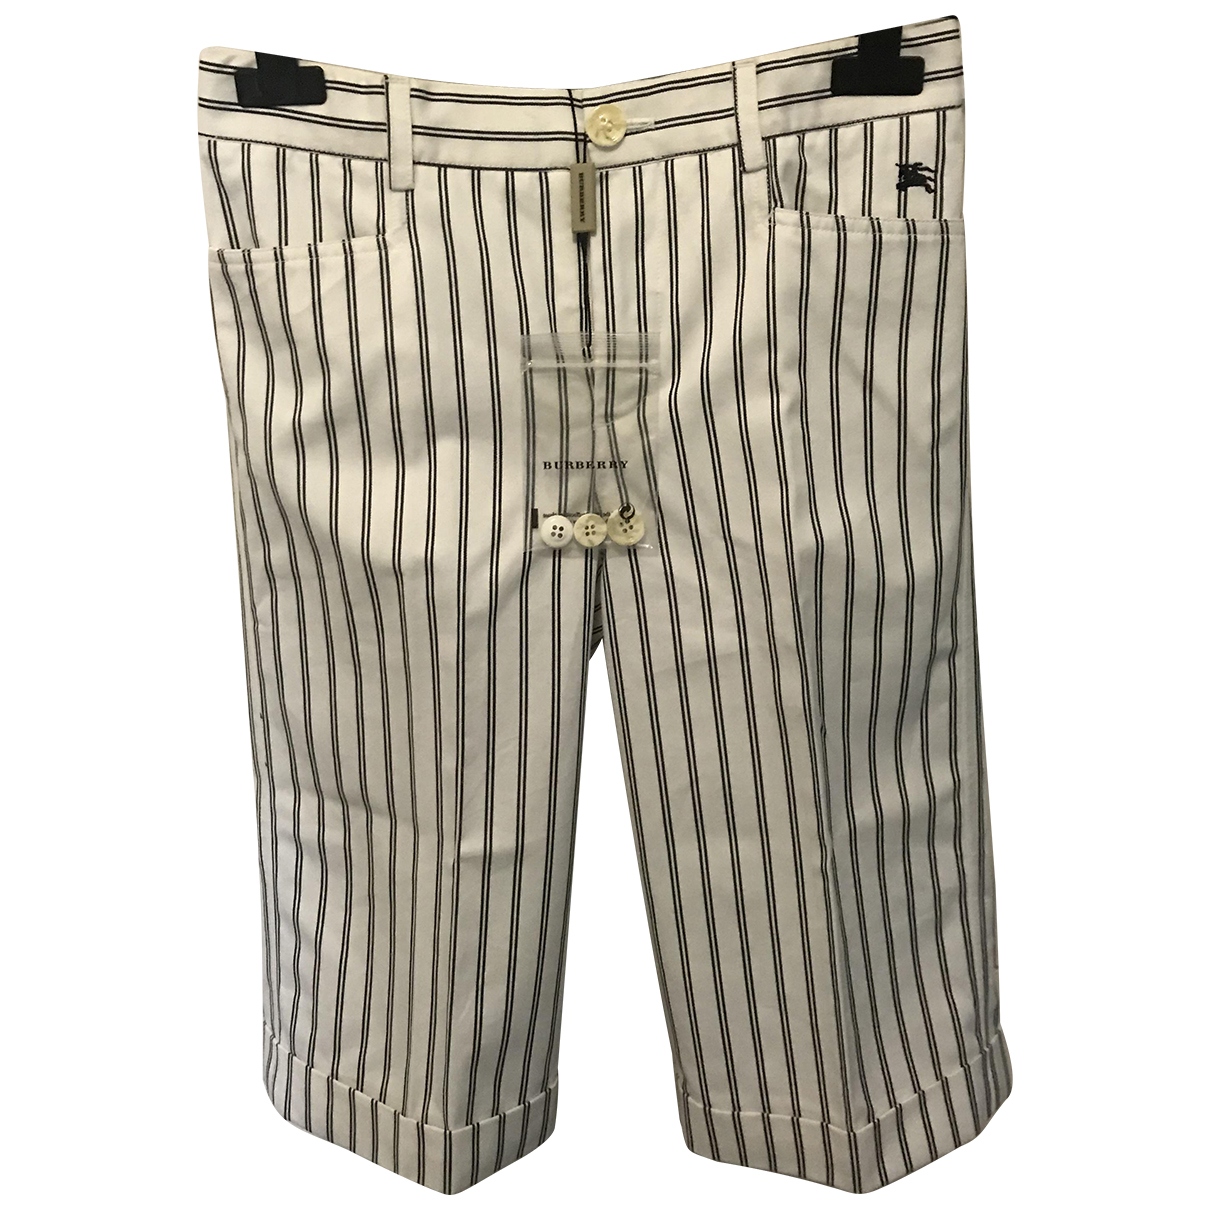 Burberry N White Cotton Shorts for Kids 10 years - up to 142cm FR